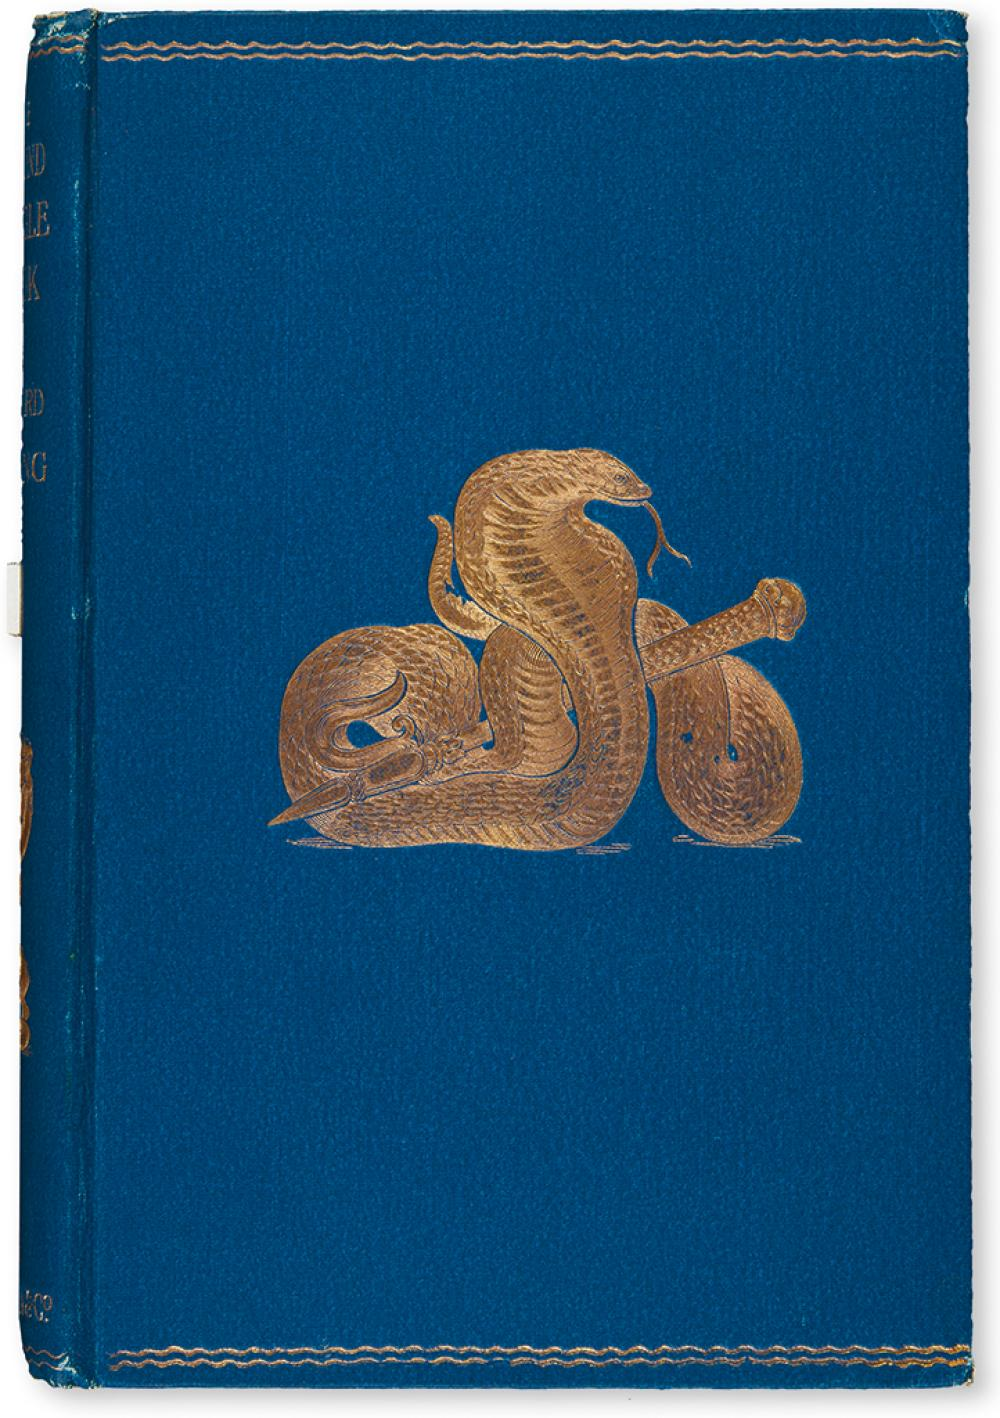 KIPLING, RUDYARD. The Second Jungle Book.